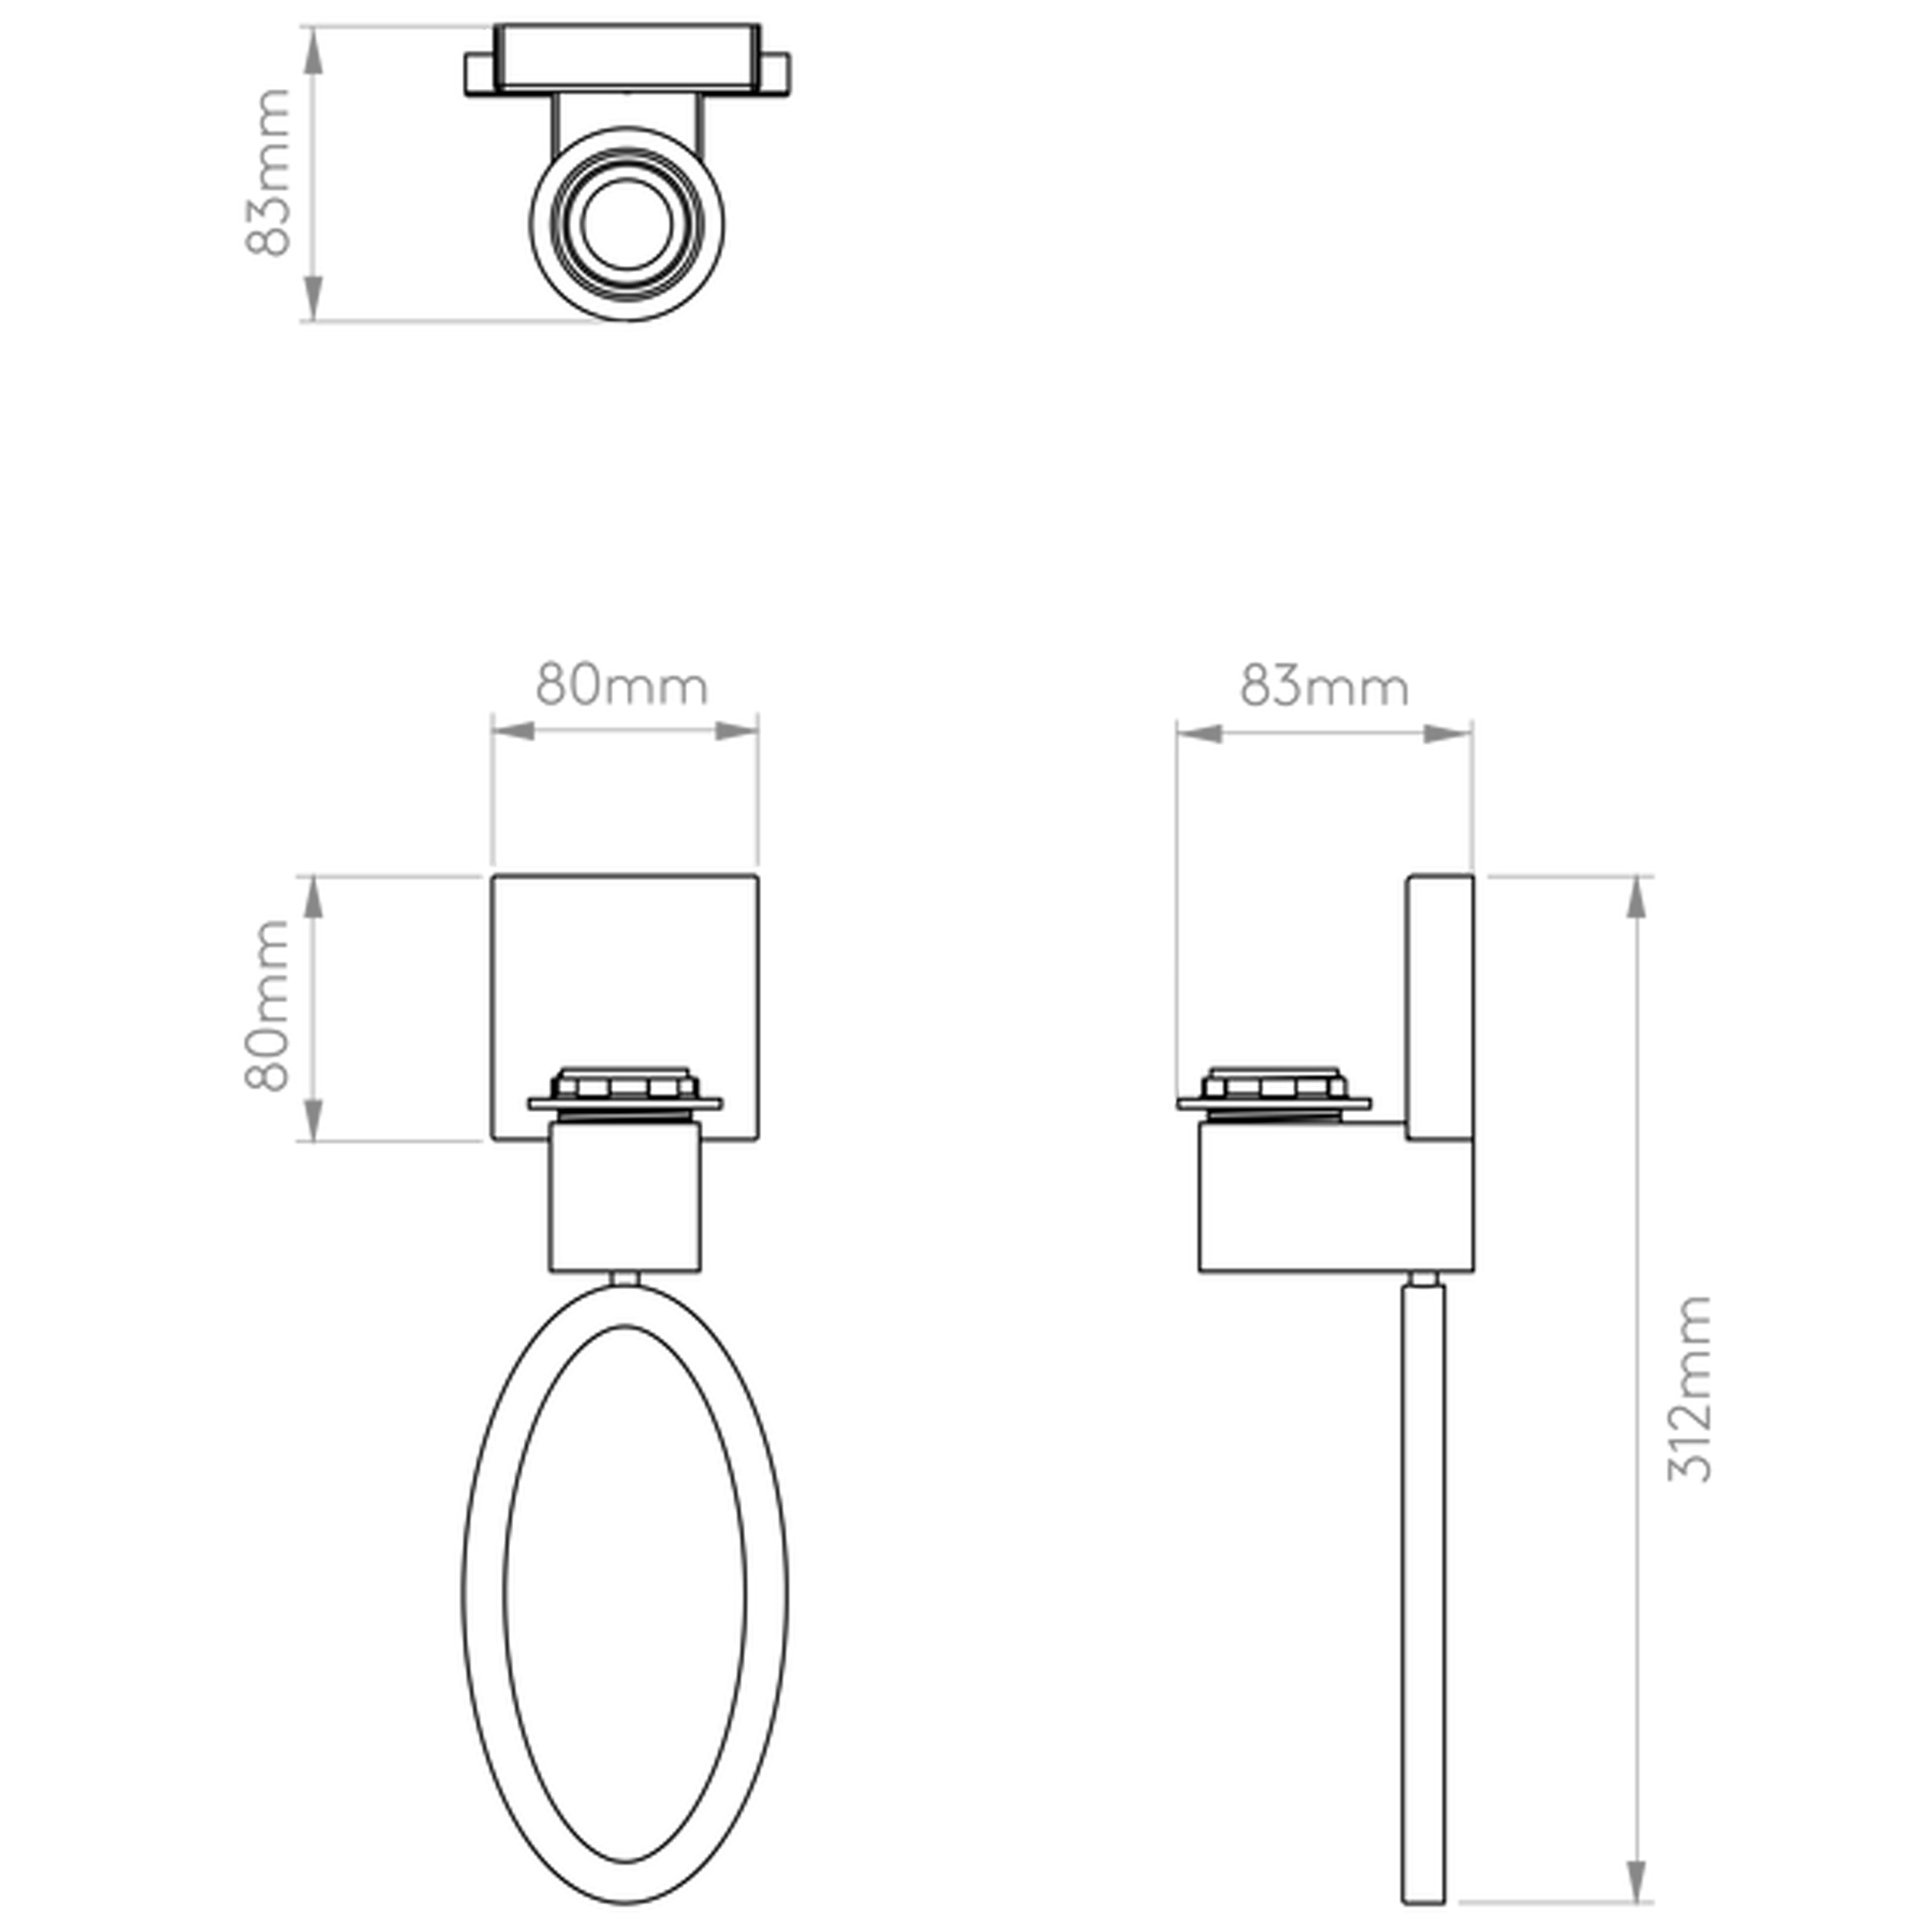 Astro Lima Wall Light Line Drawing